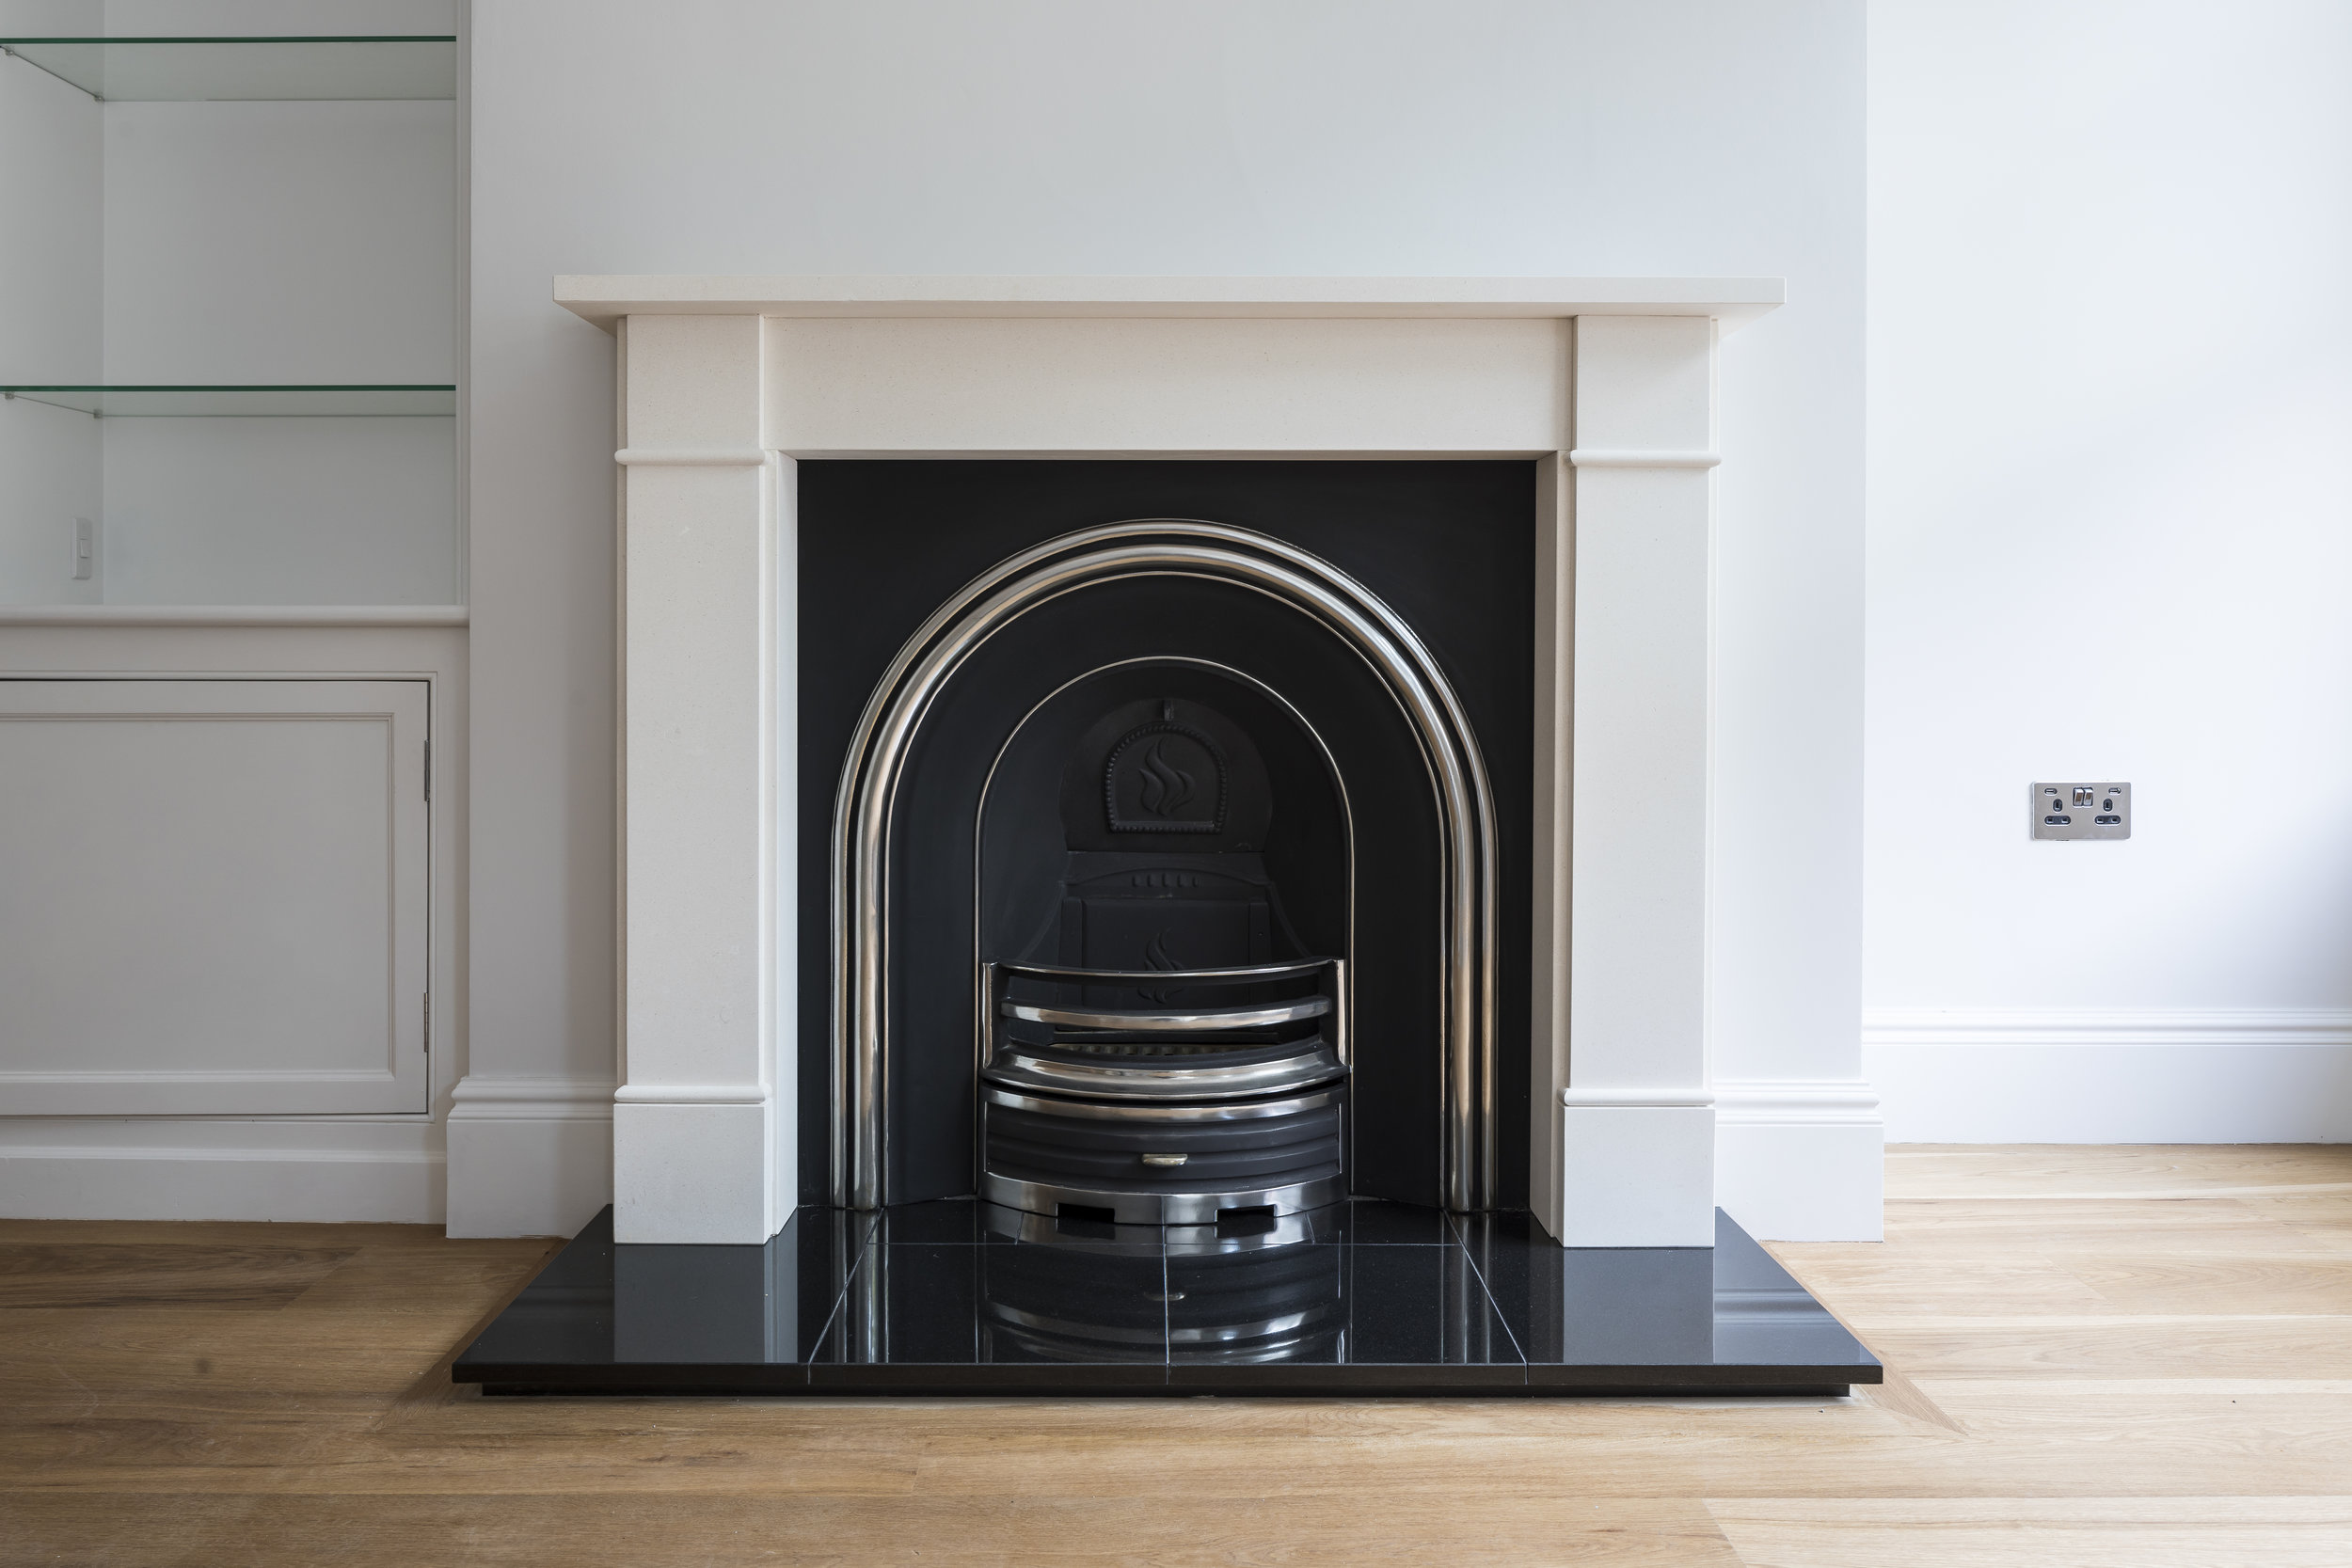 Clapham SW4 3rd house fireplace-2.jpg